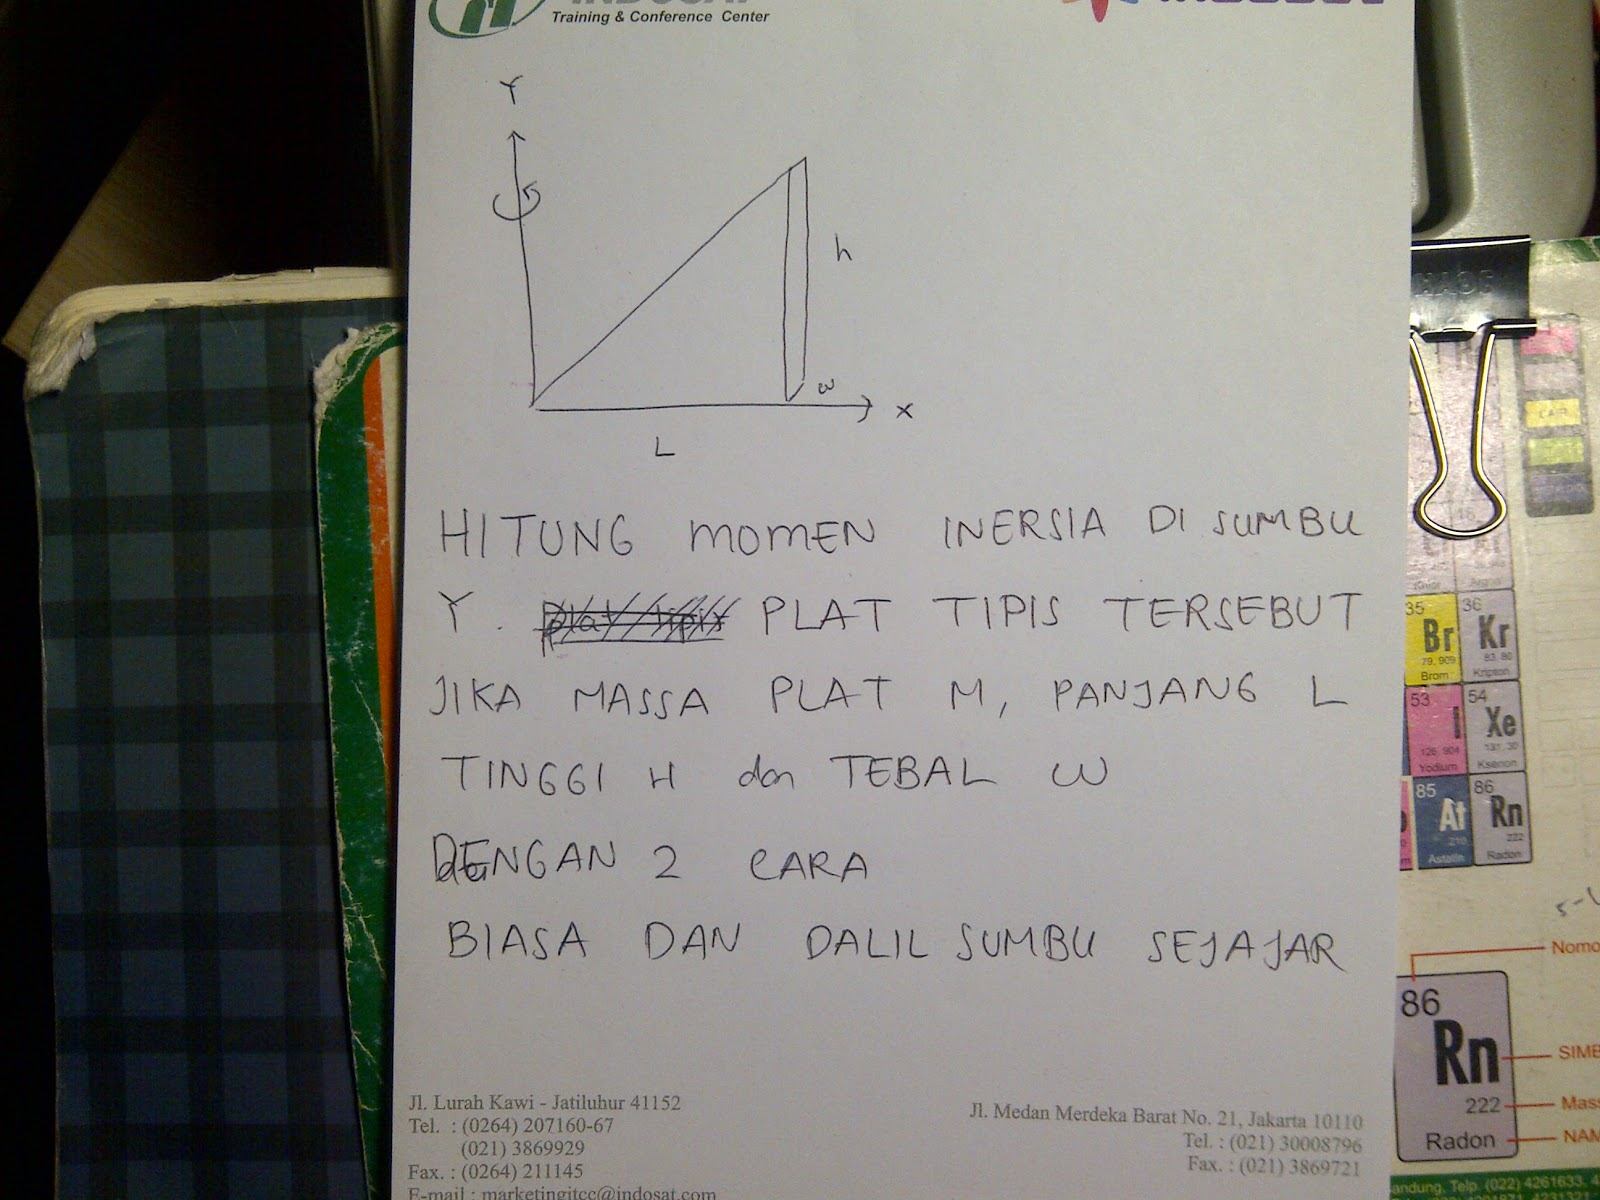 online physics problem solver projectile motion at angle off cliff  physics corner itb physics problem solver online solver dari problem rizky pri udha